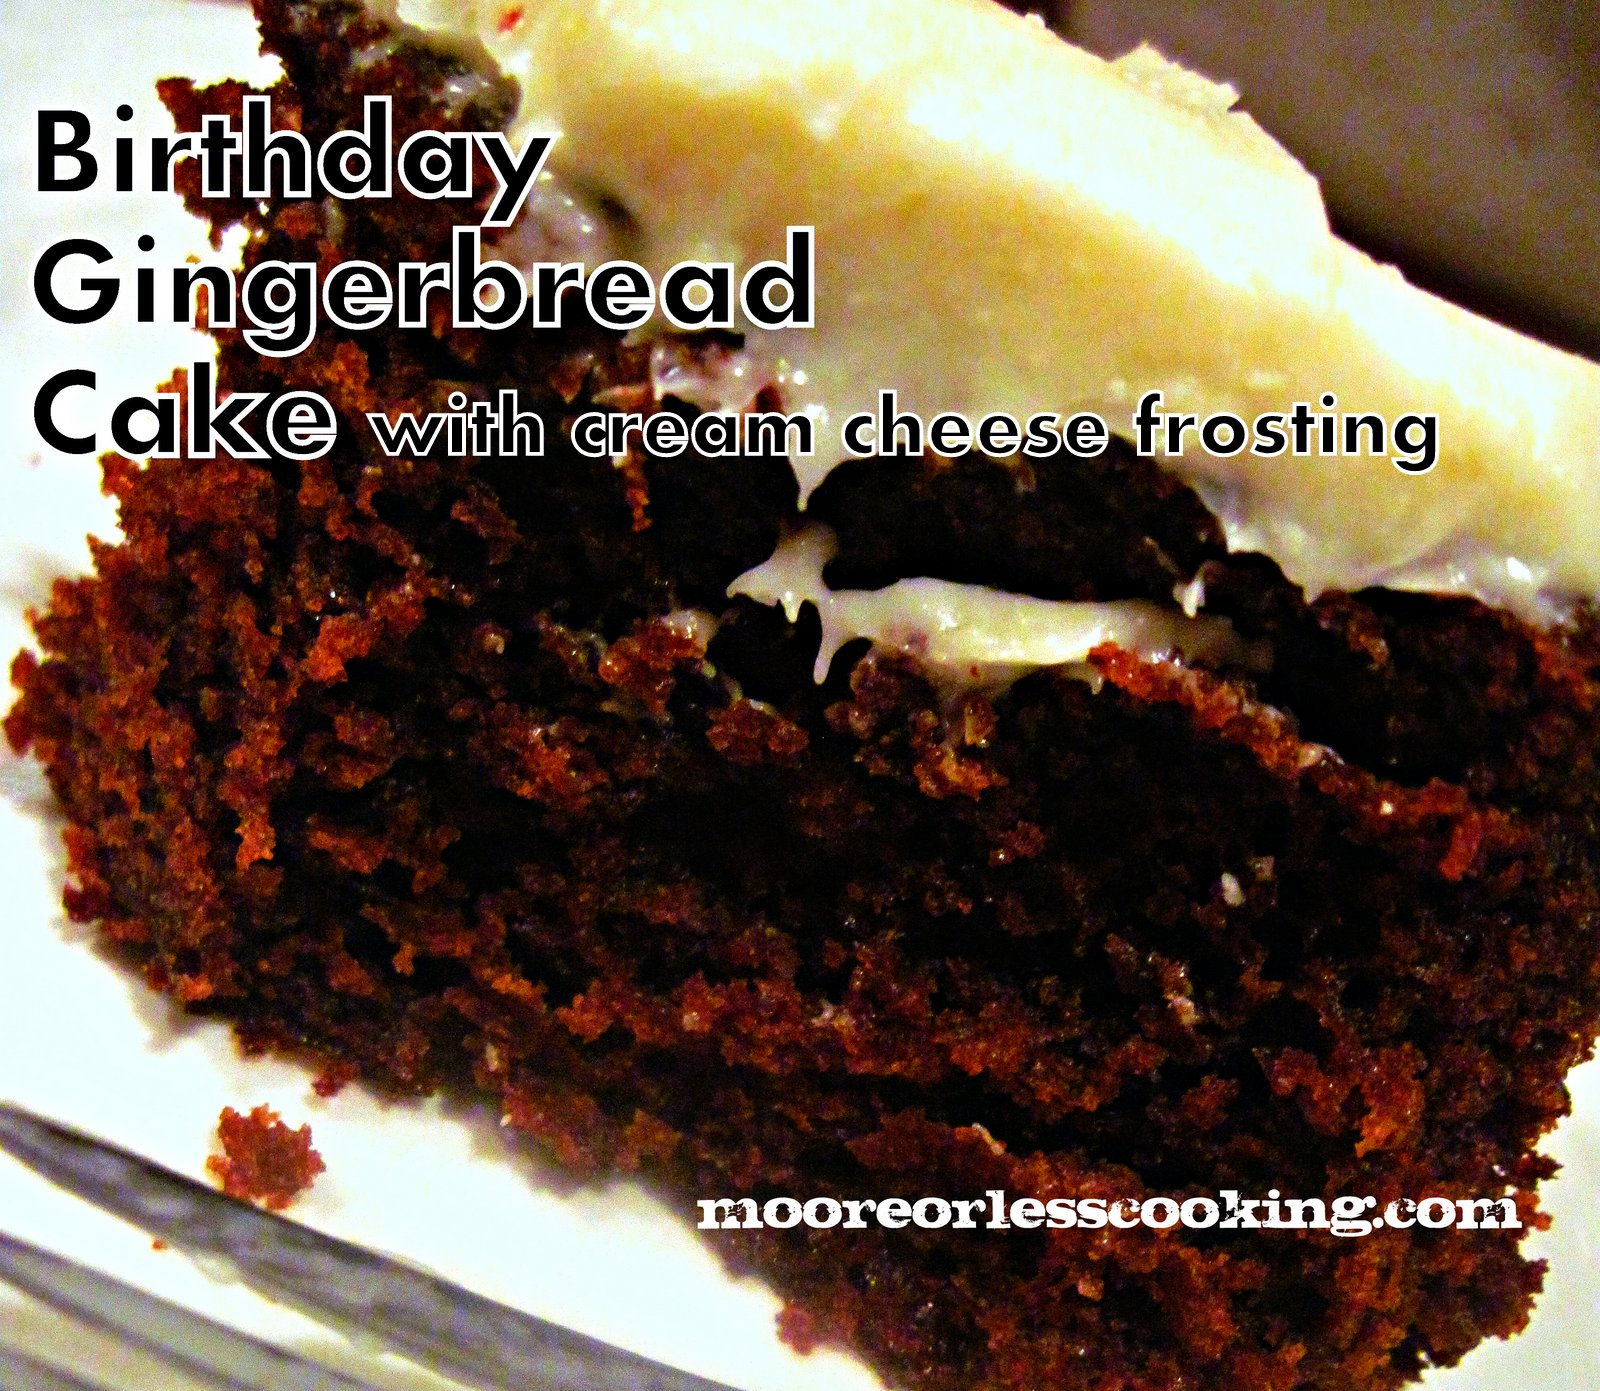 ~Sundays With Joy~ Birthday Gingerbread Cake with Cream Cheese Frosting